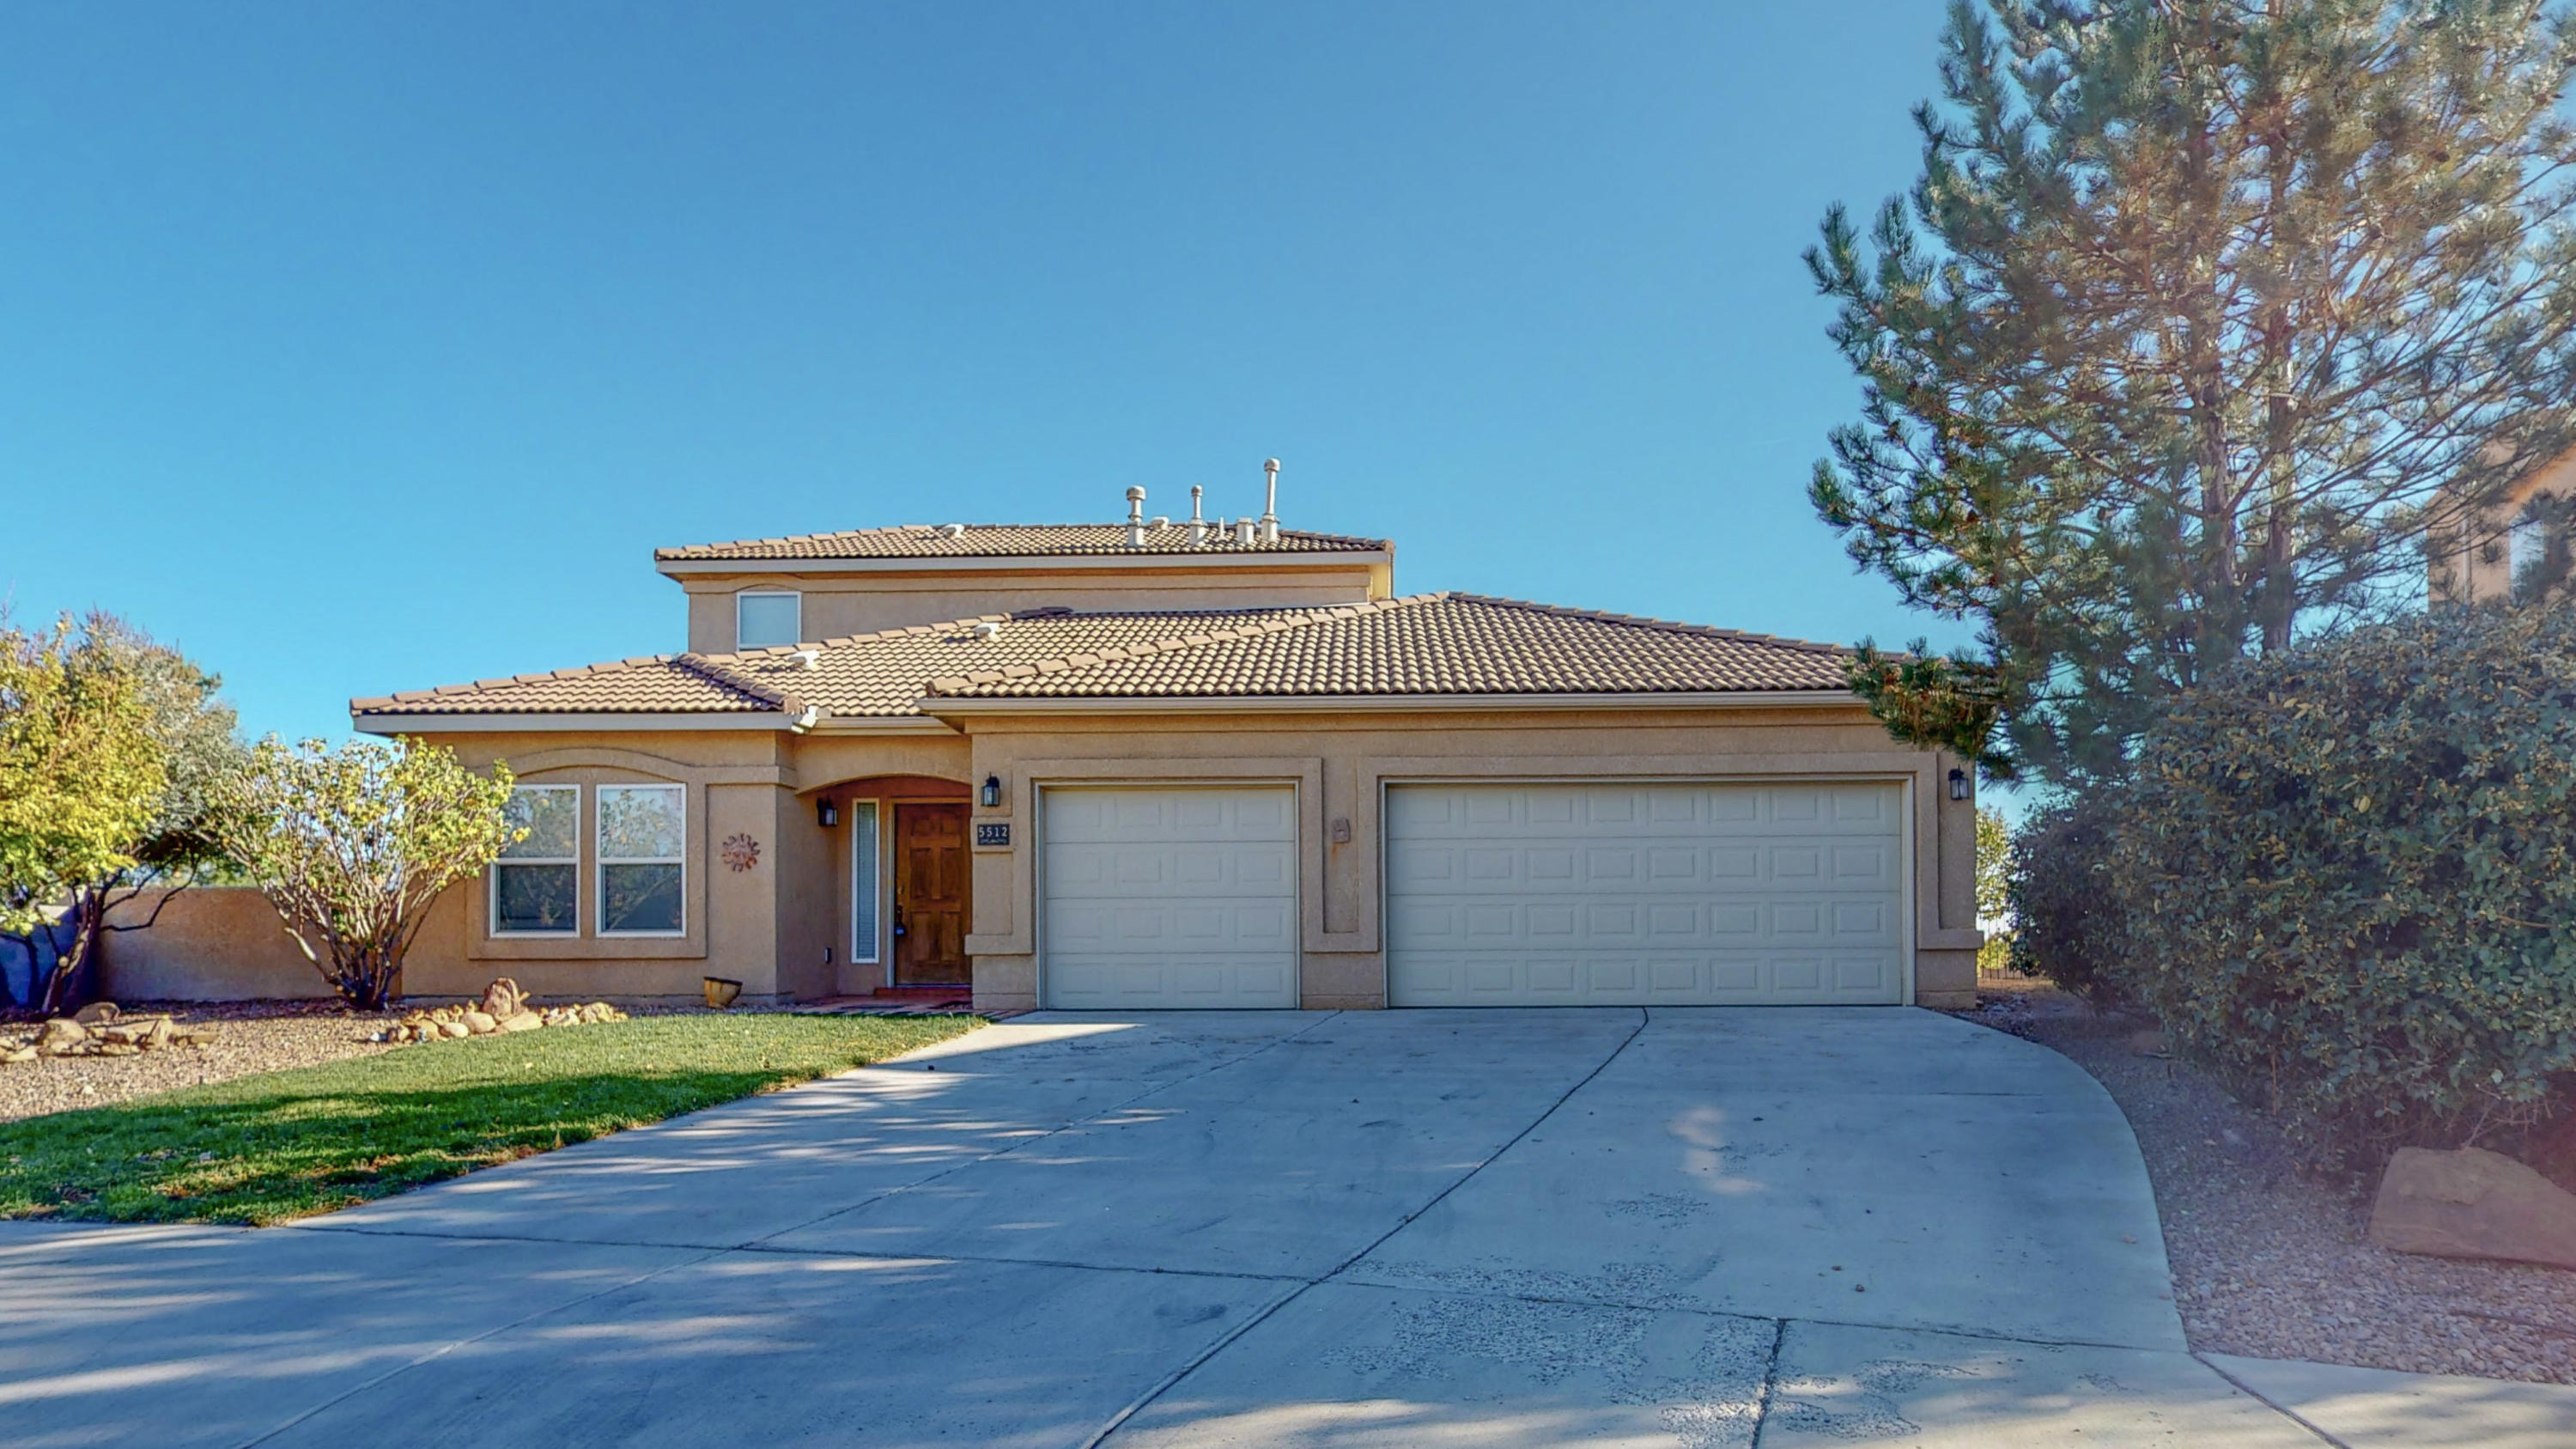 The best Mountain views in Rio rancho, 4 bedrooms with an additional loft that could be a 5th or an office or a great home theatre. 3 garages with space for all of your toys. Huge yard with a covered patio, open floor plan and huge family room. # bedrooms freshly painted and ready for a buyer today.